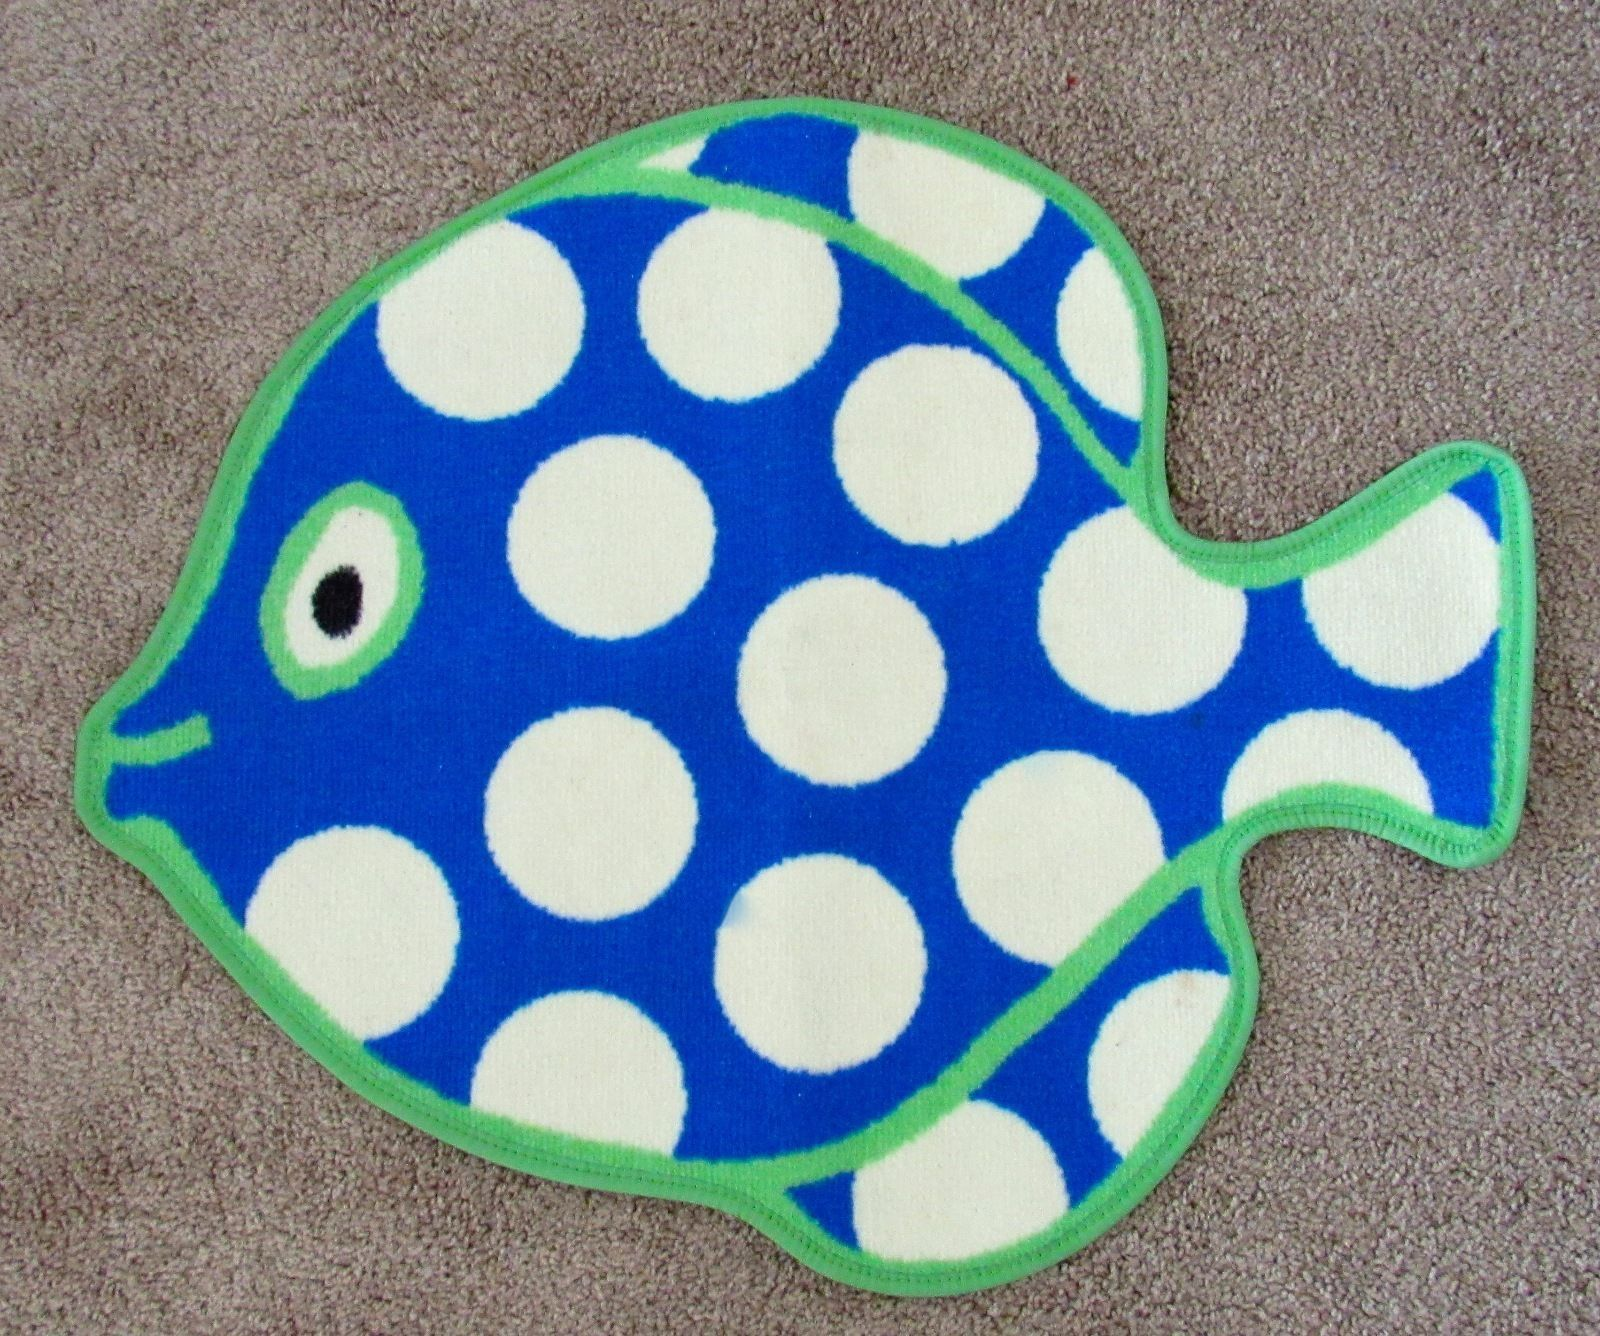 Cute Fish Shaped Polka Dot Kids Bathroom Bathmat Rug Multi-Color Boys & Girls